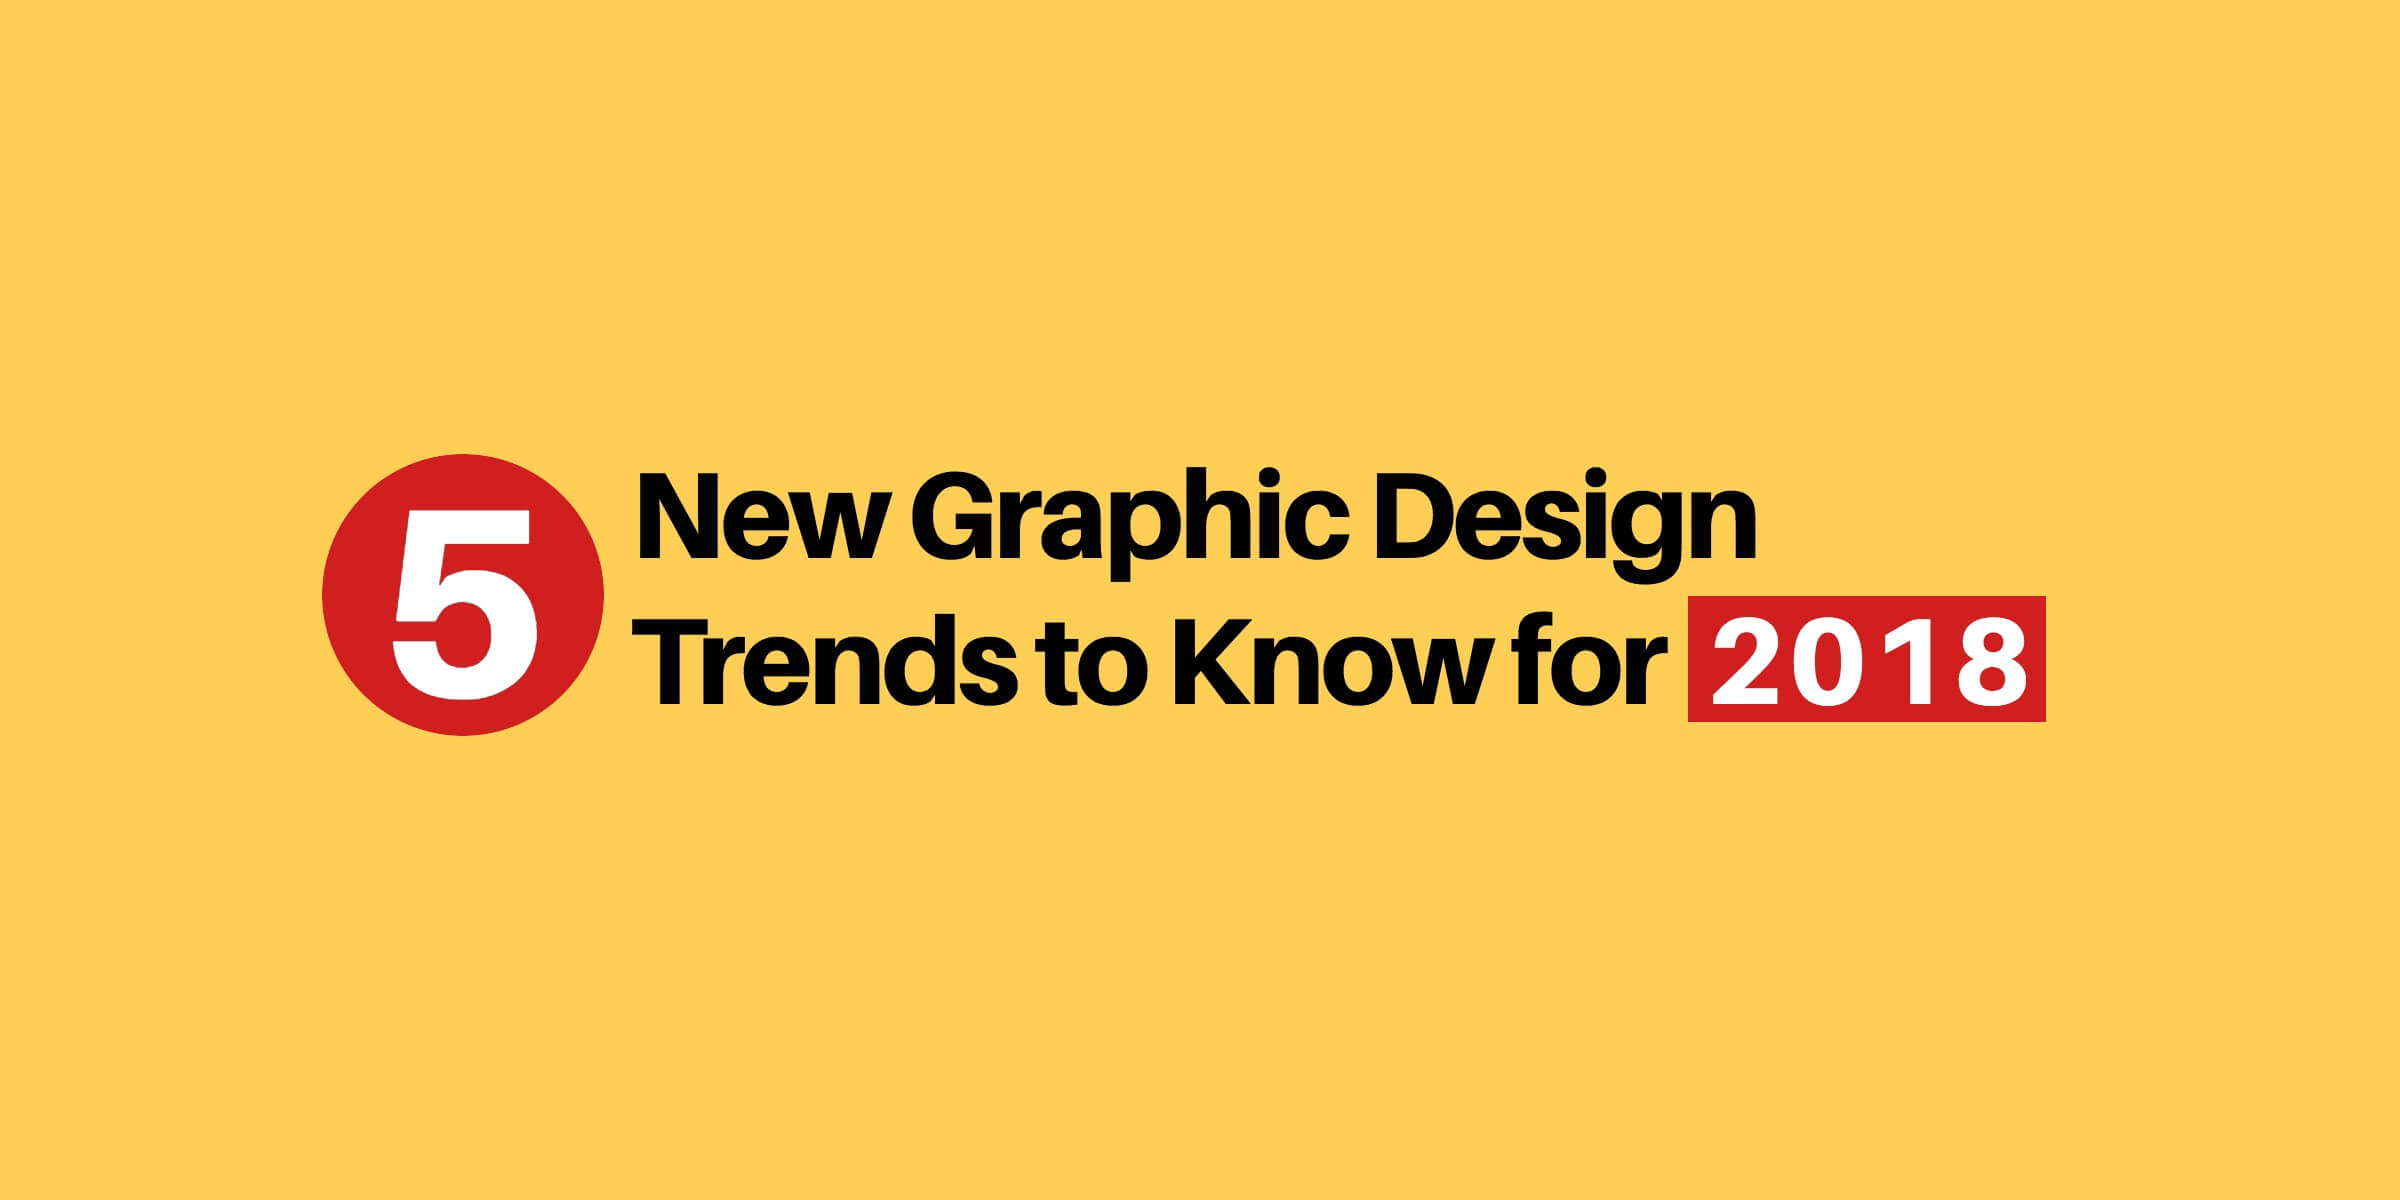 graphic_design_trends_2018